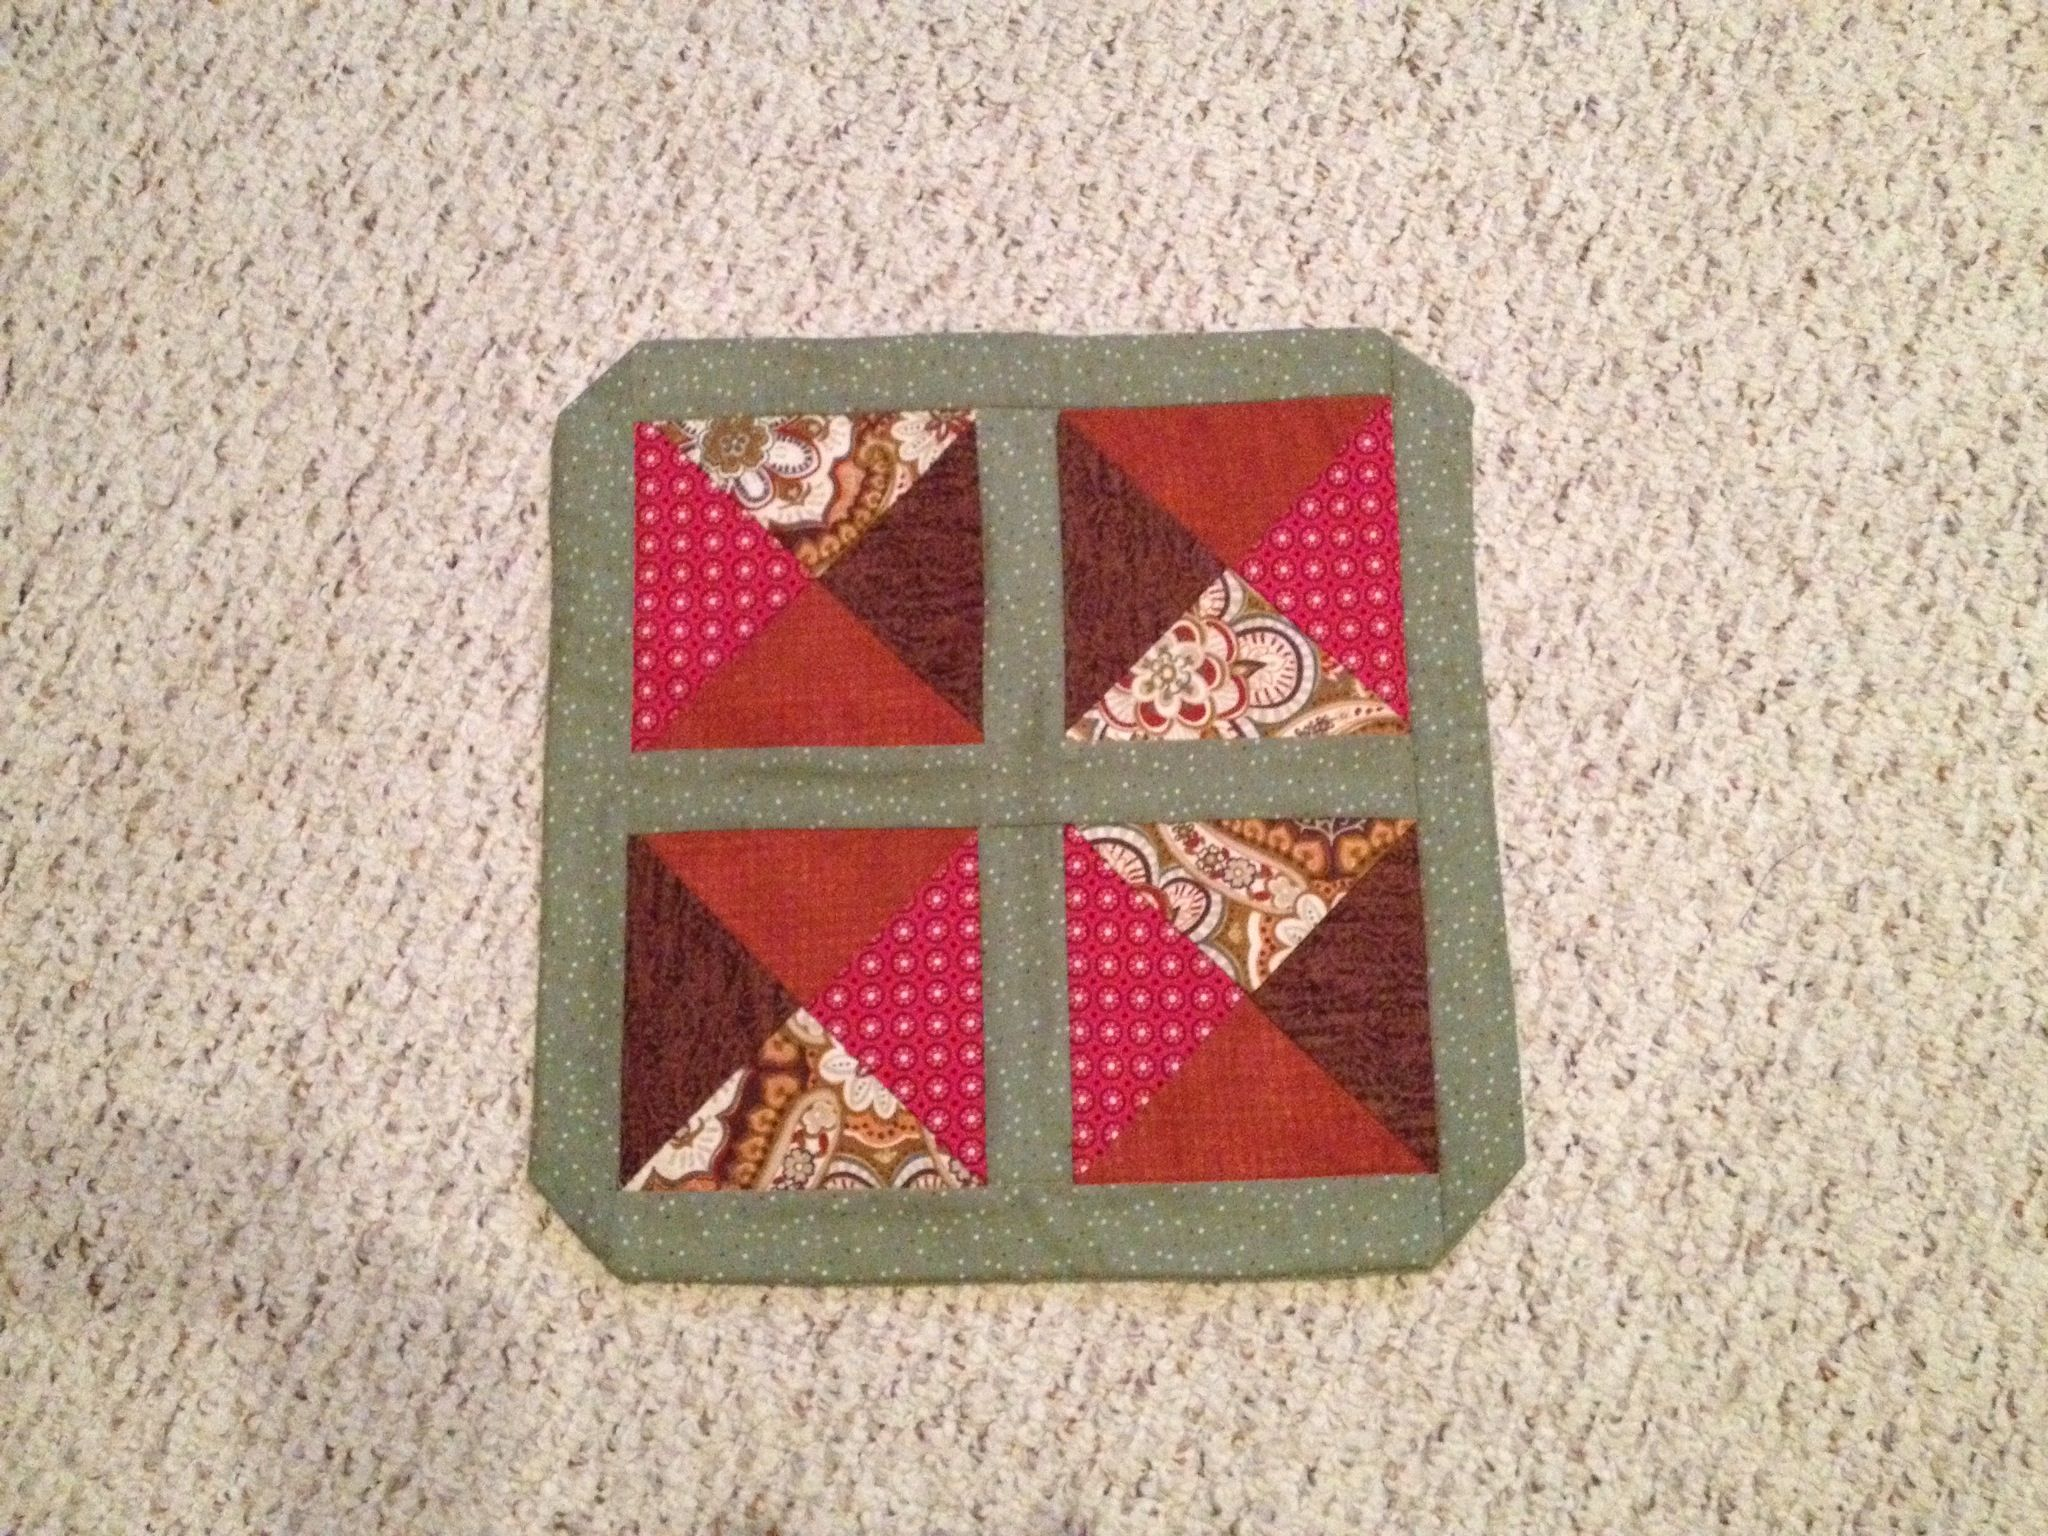 Square table centerpiece made from small quilt blocks.